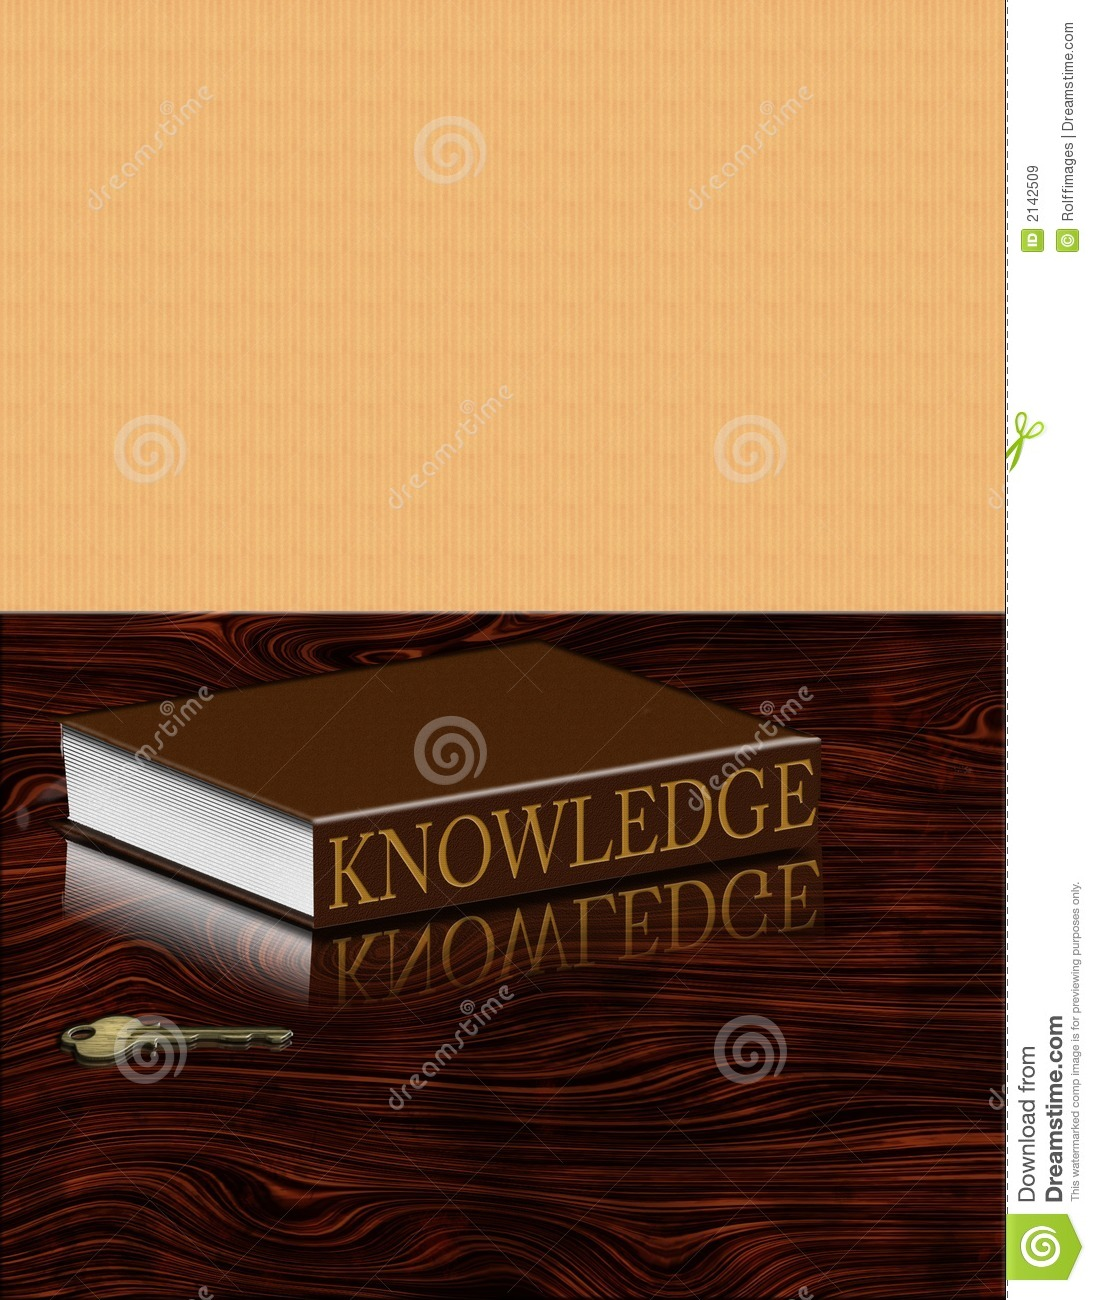 Doubt is the key to knowledge?